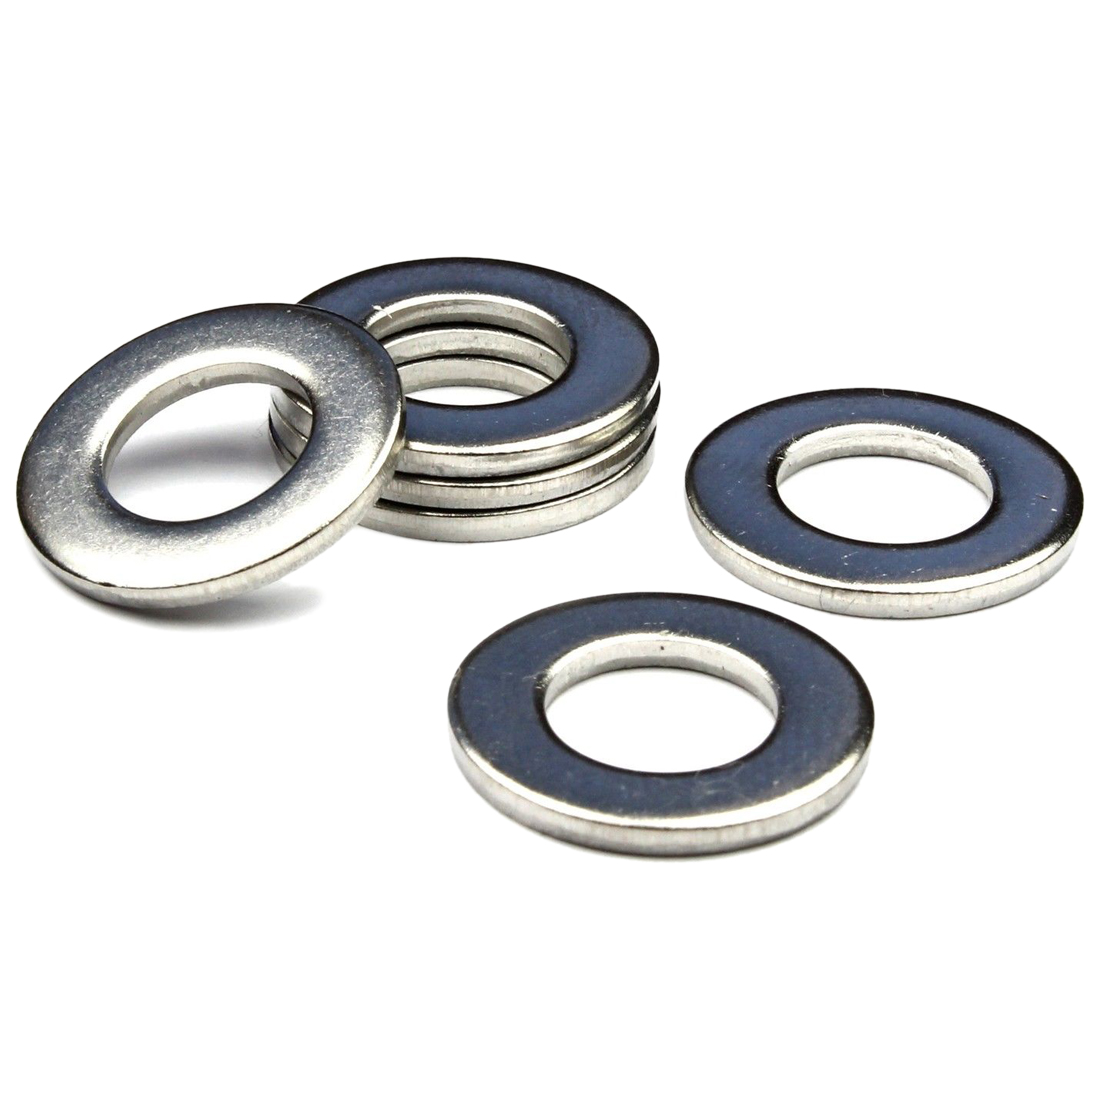 Stainless steel Form a flat washers to fit Metric Bolts & Screws M30 31mm*56mm*4mm 20pcs 50 pieces metric m4 zinc plated steel countersunk washers 4 x 2 x13 8mm